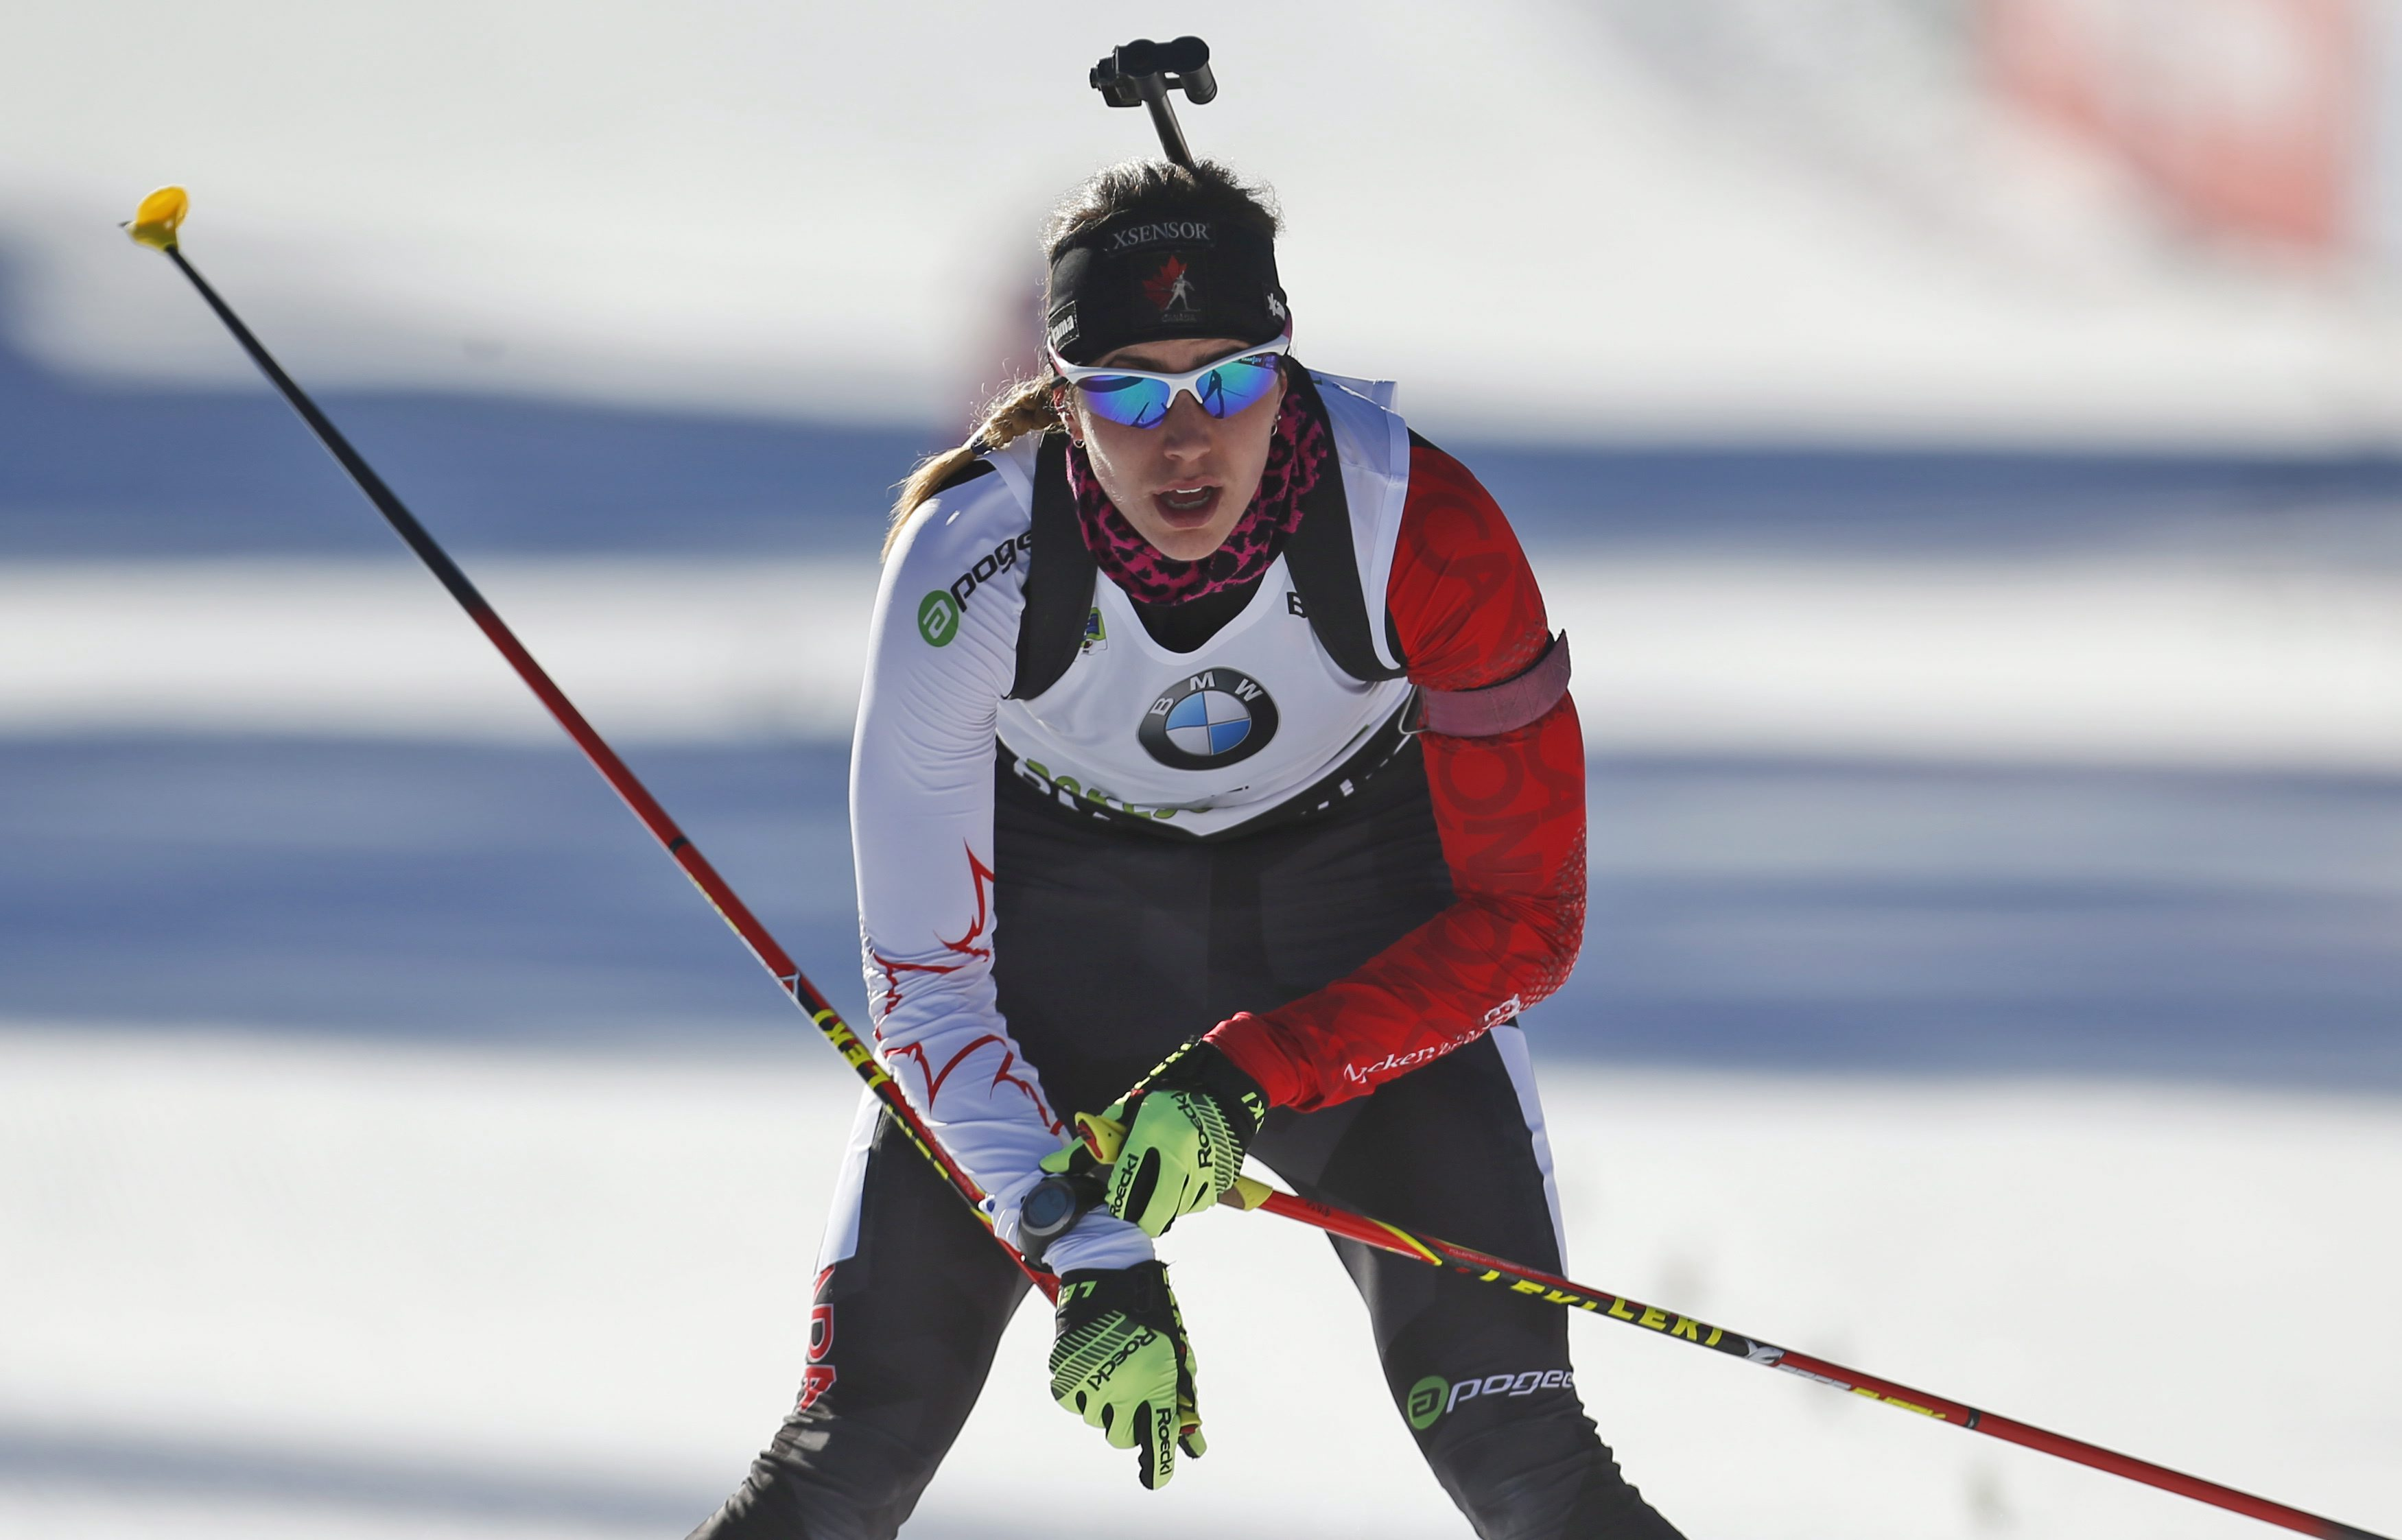 Canada's Rosanna Crawford enters the finish area to place seventh in the women's 10 km pursuit competition at the Biathlon World Cup event, in Pokljuka, Slovenia, Saturday, Dec. 20, 2014. (AP Photo/Darko Bandic)